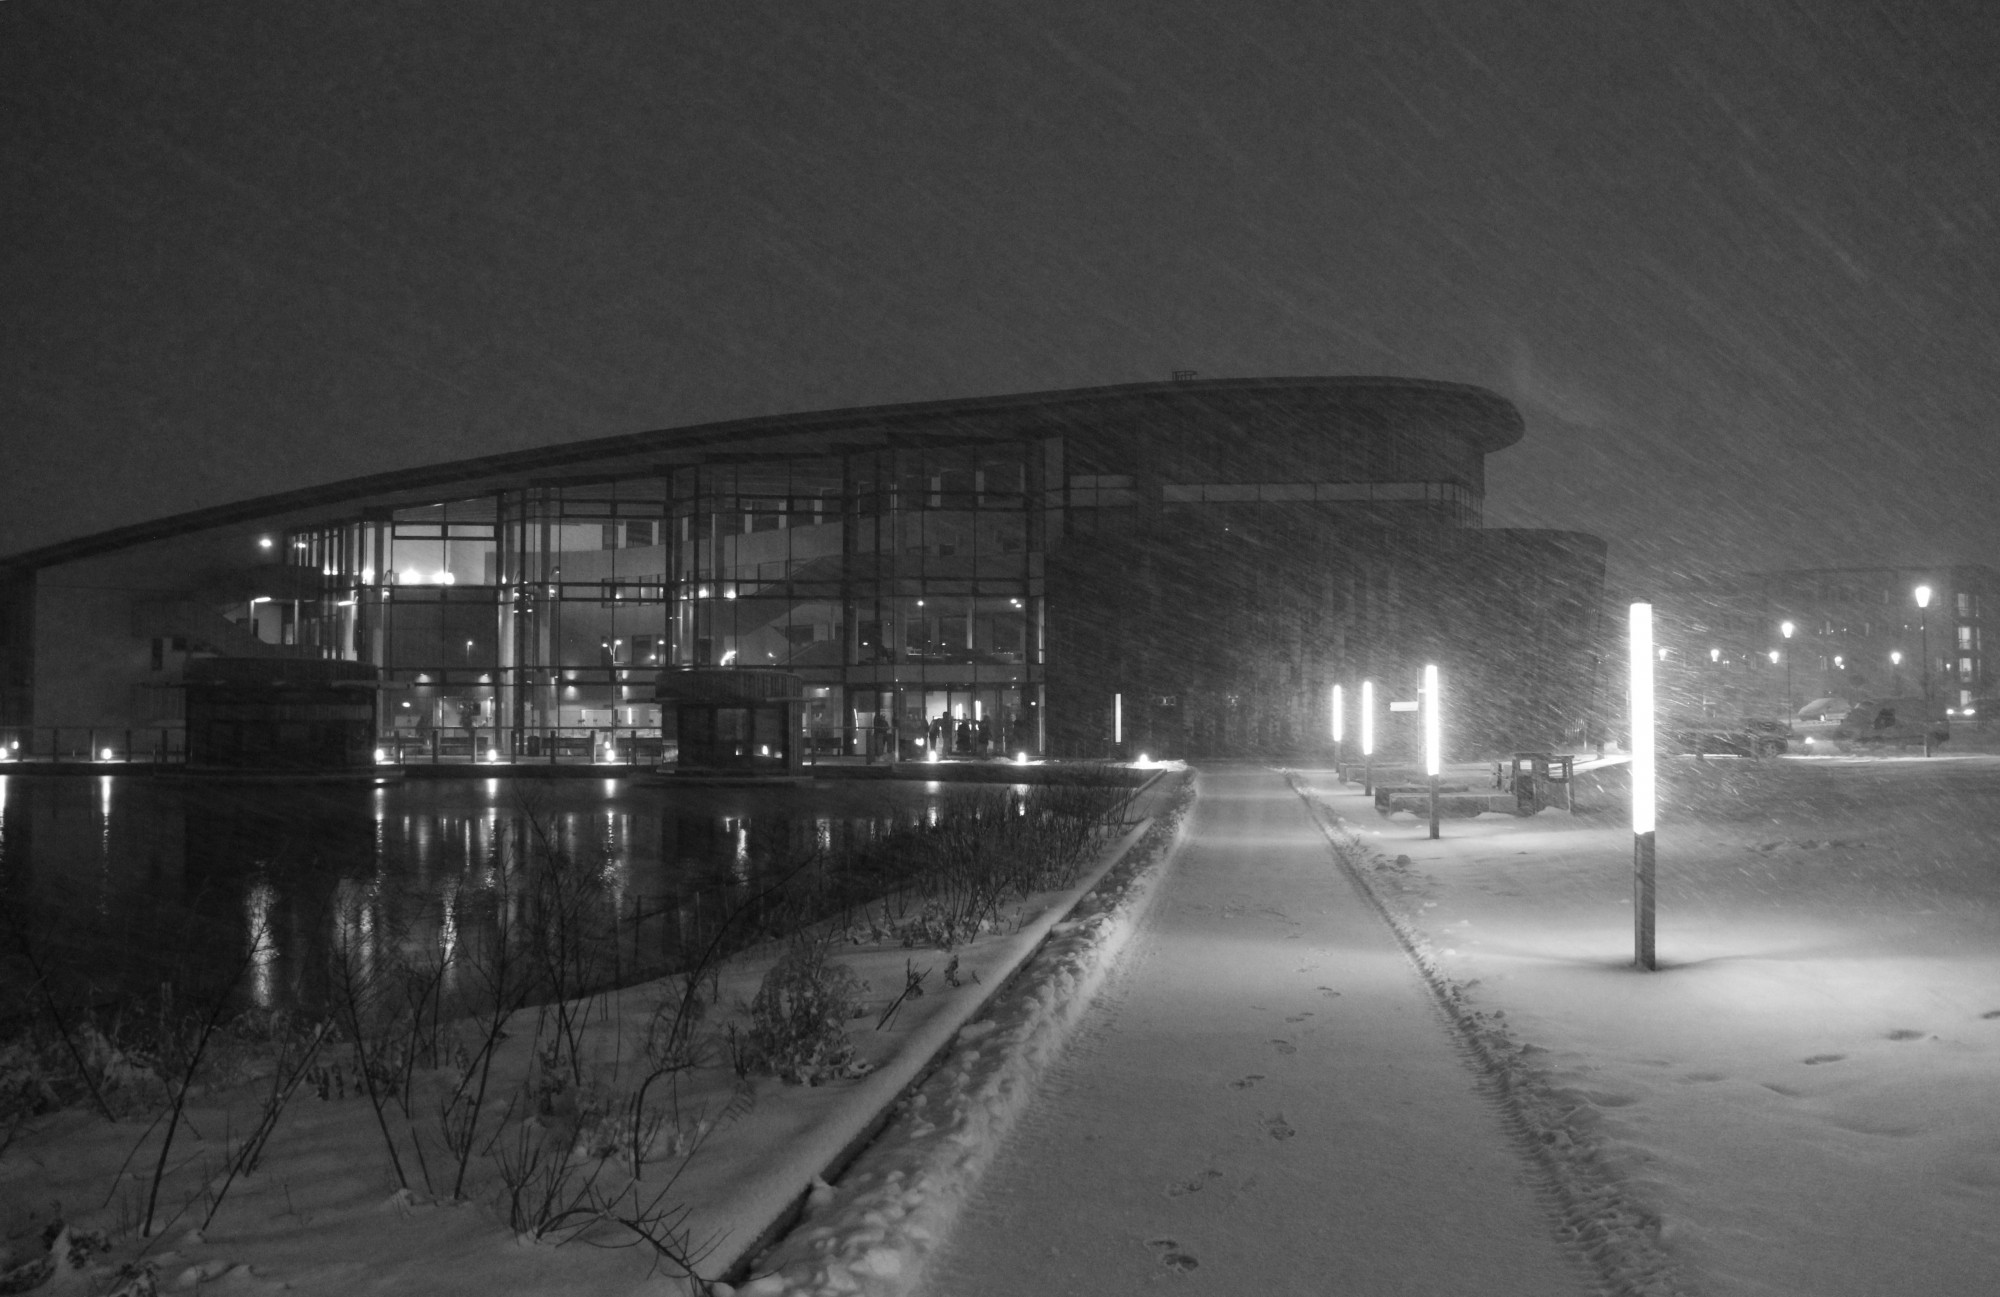 'The Hub' - York - During January's Snow